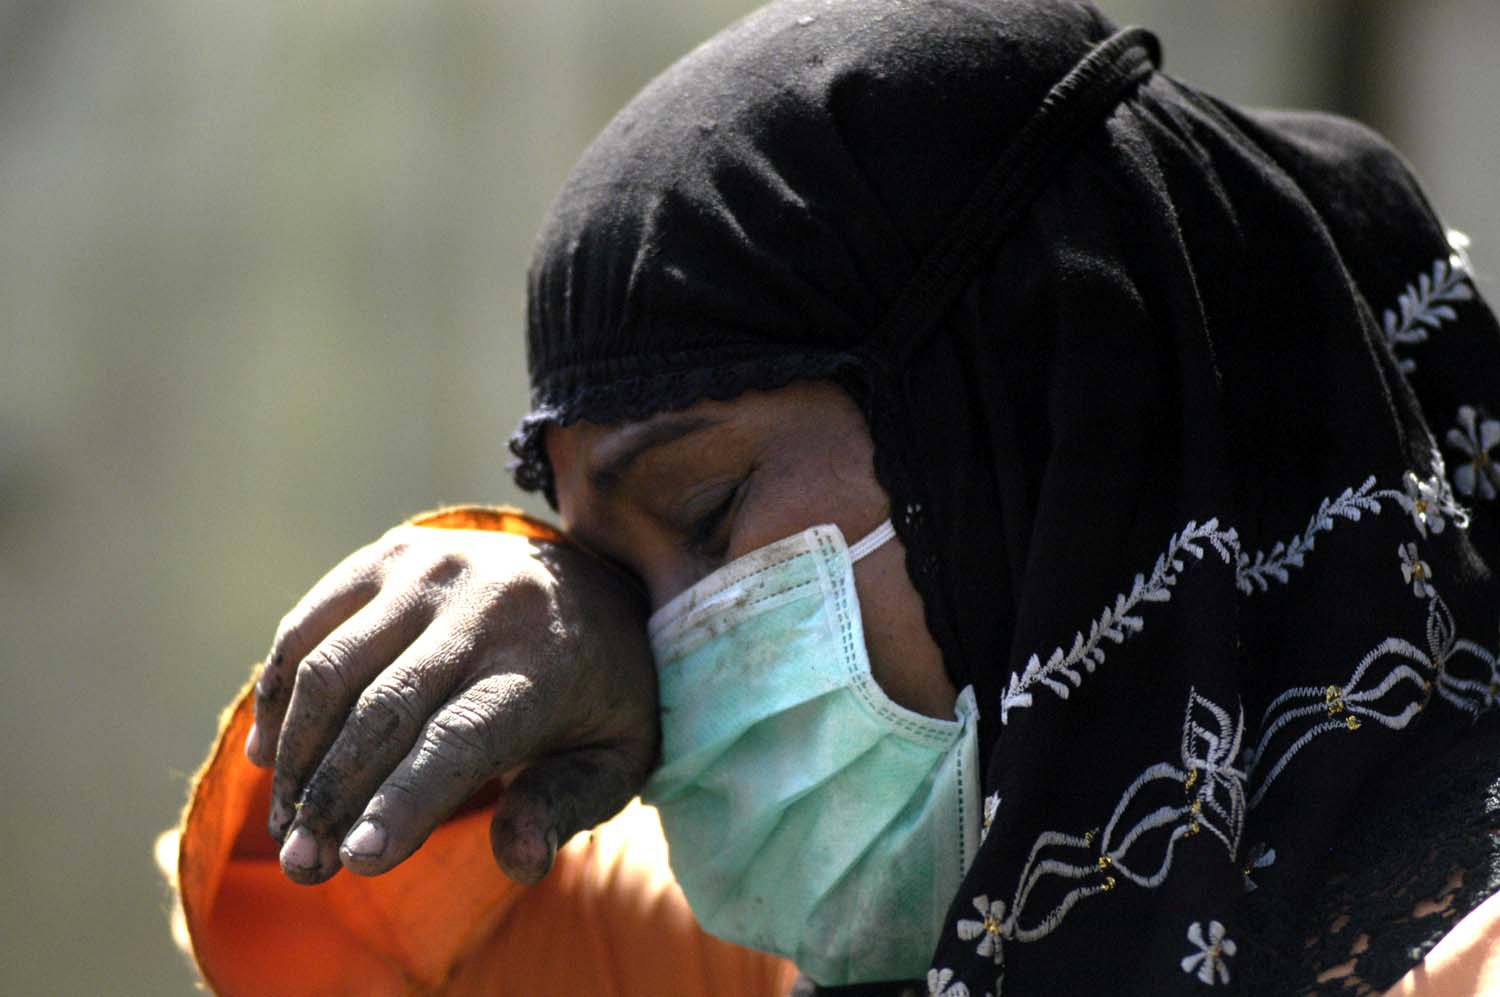 A woman cries while searching for family members amidst the ruins of her collapsed home in Meulaboh, Aceh on 2 January, 2005. Meulaboh, the capital of West Aceh Regency, was one of the hardest hit areas